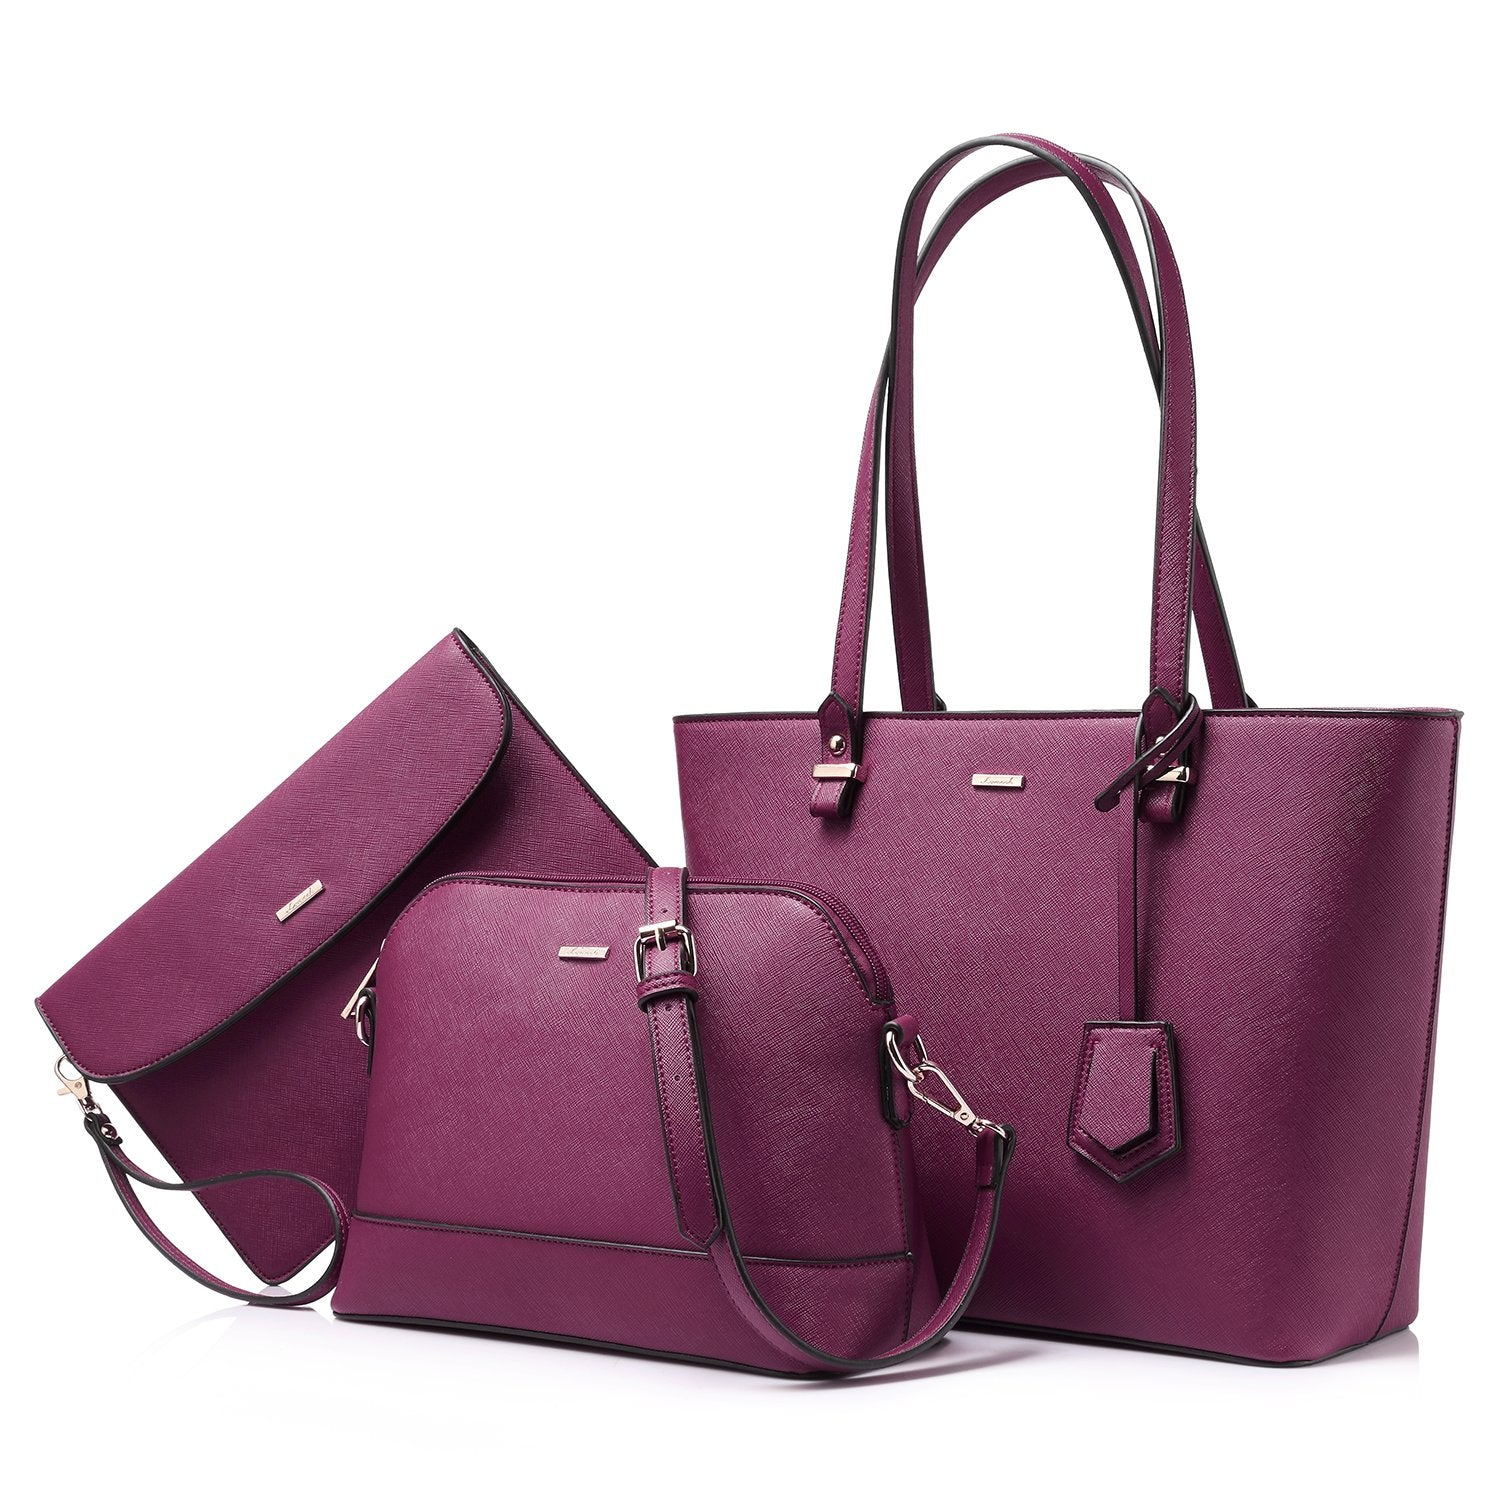 Lovevook-handbag-composite-bag-RHNWB0976-Purple-positive